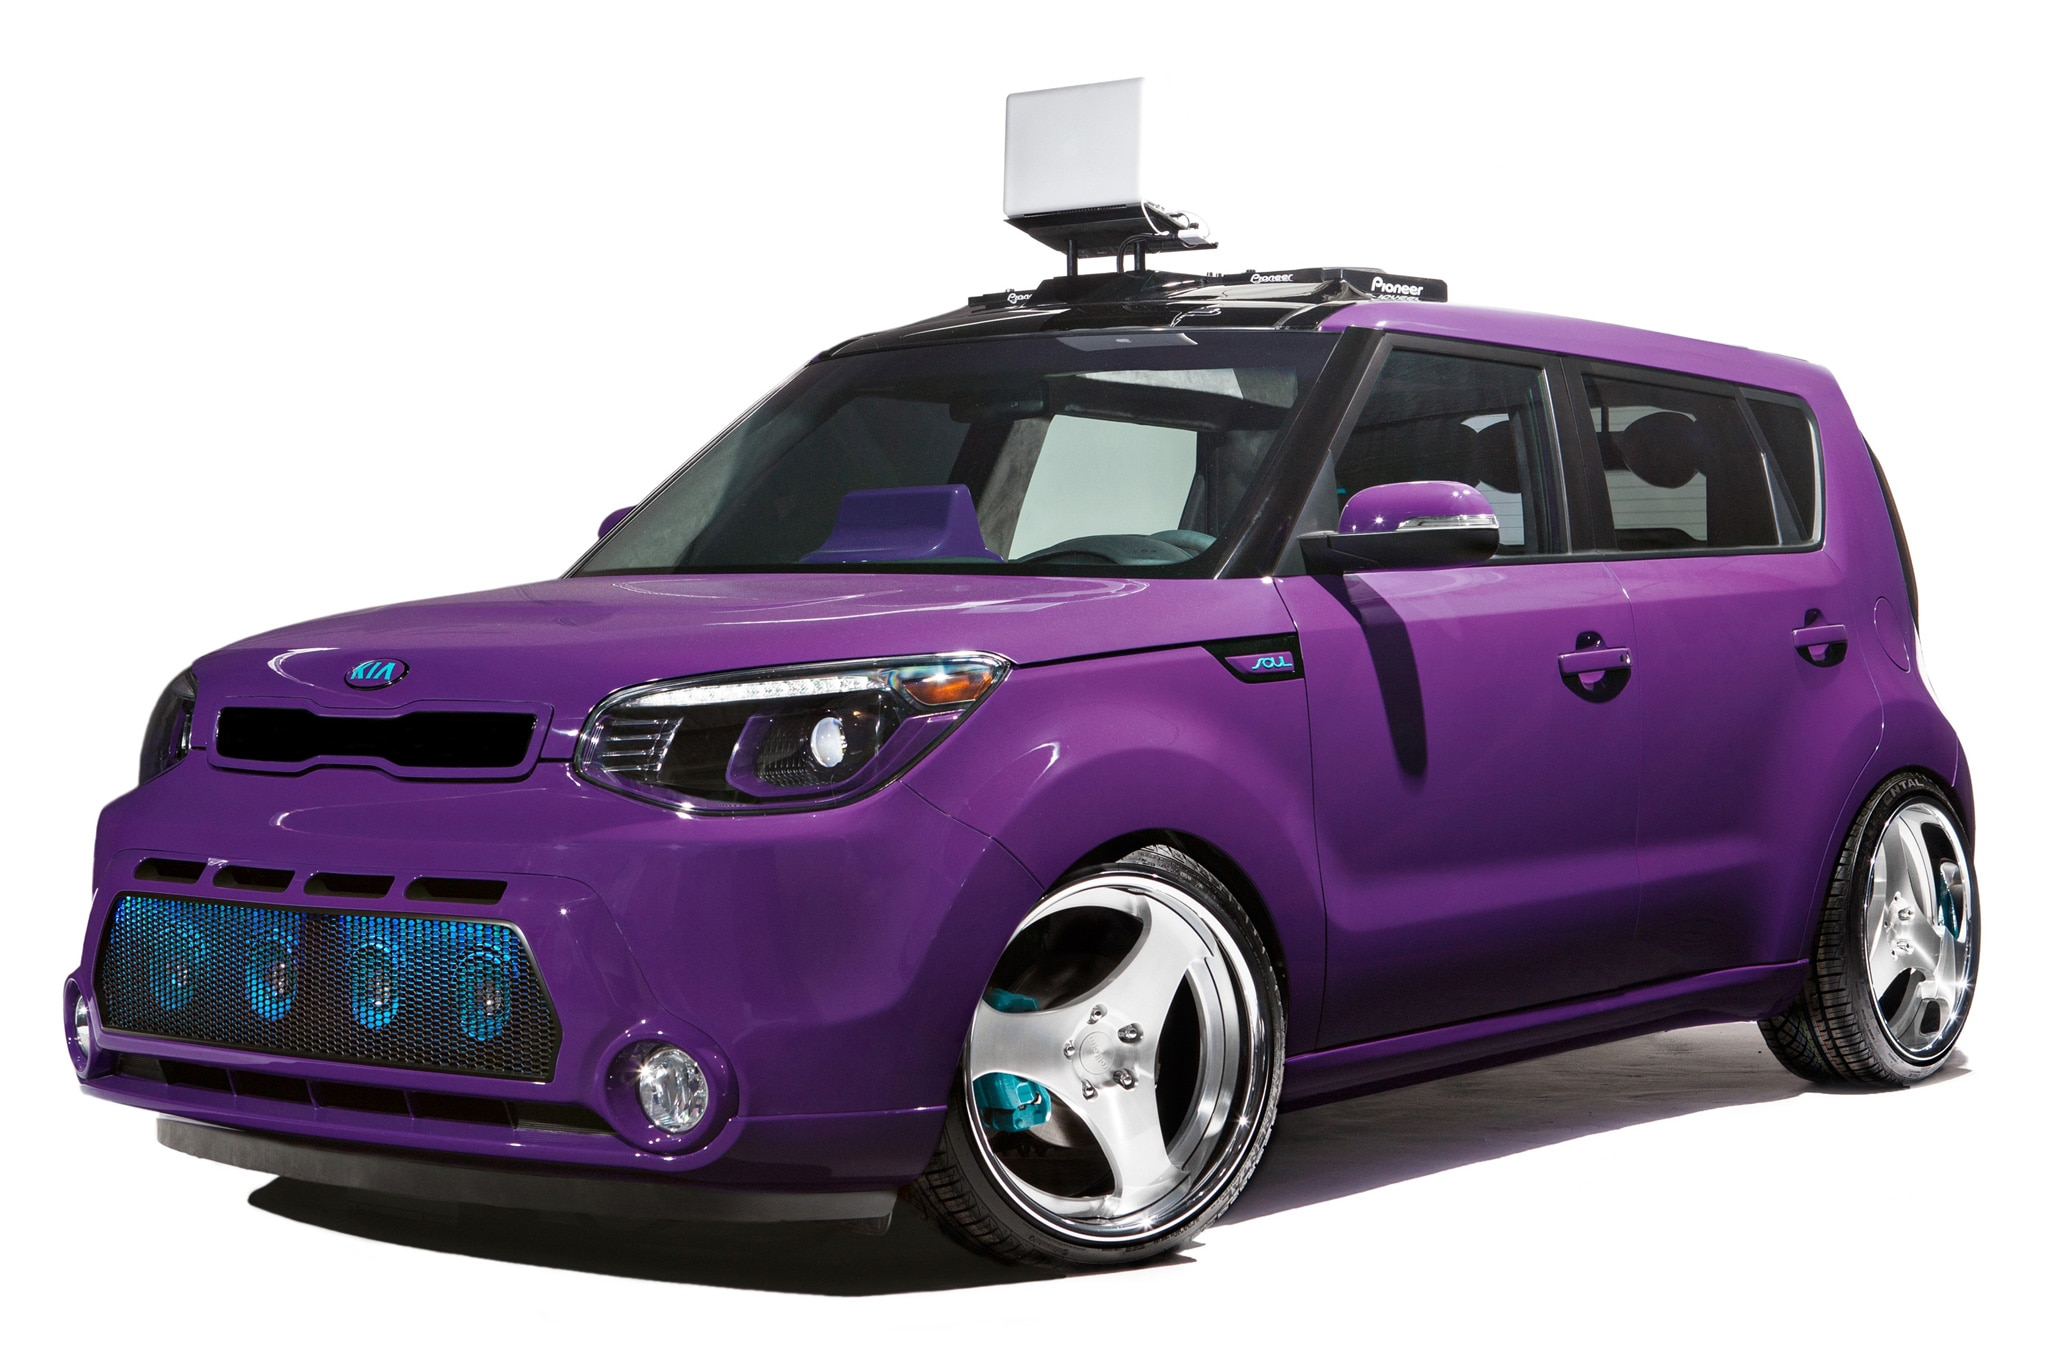 2014 Kia Soul 2013 SEMA DJ Booth Concept Front Three Quarters View1